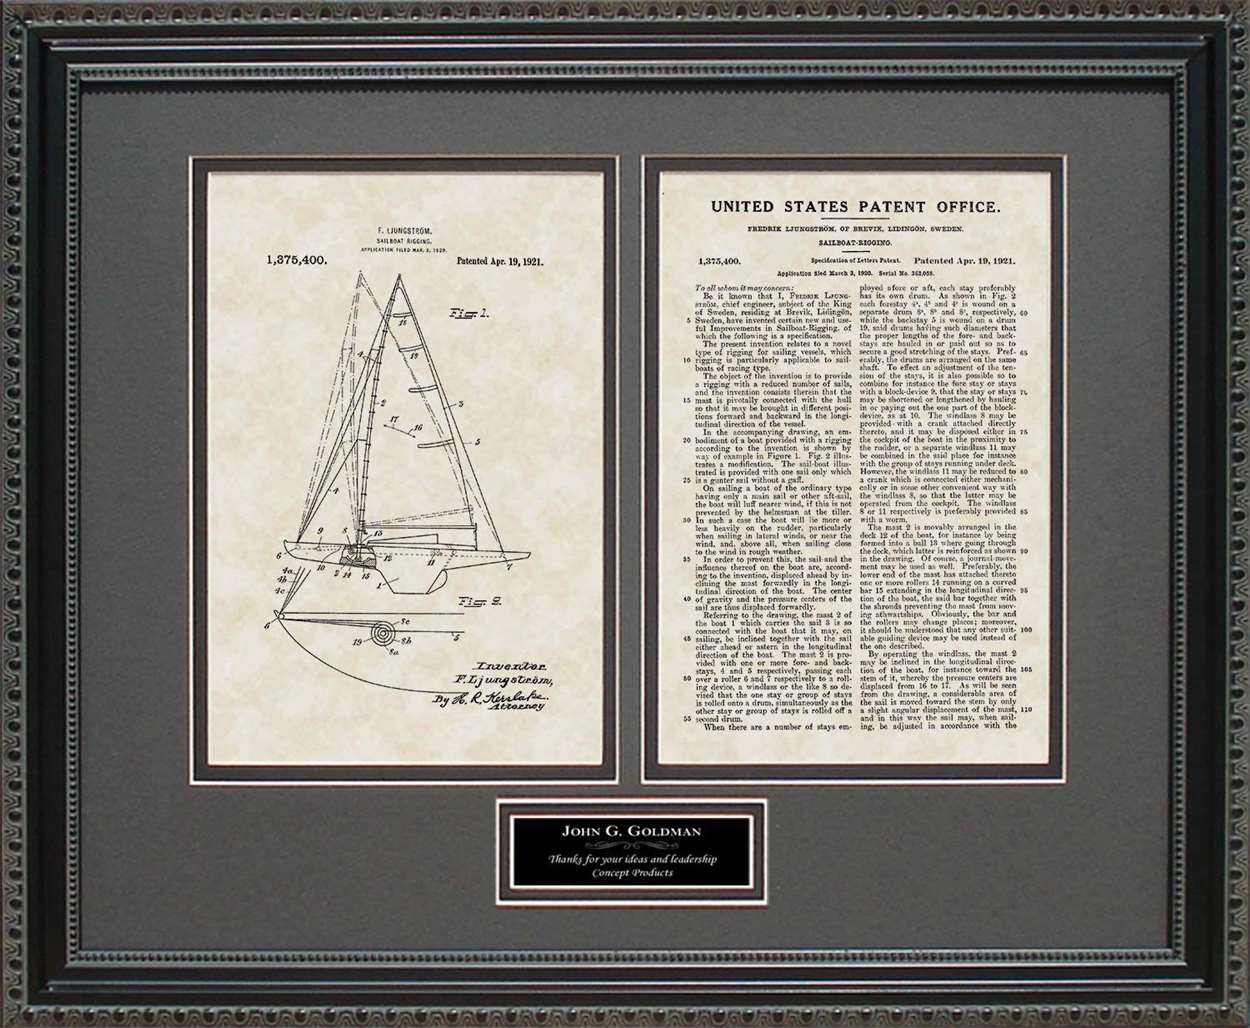 Personalized Sailboat Patent, Art & Copy, Ljungstrom, 1921